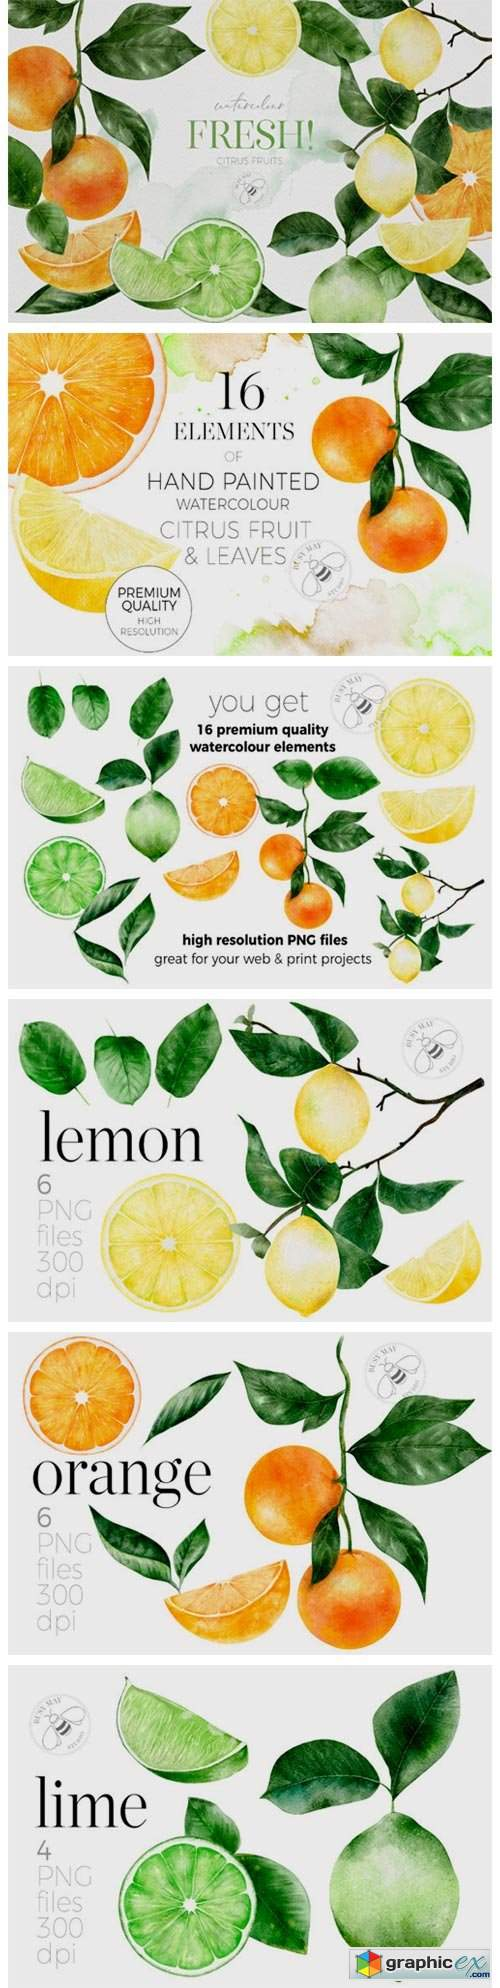 Fruit Watercolour Citrus Fruit Lemons